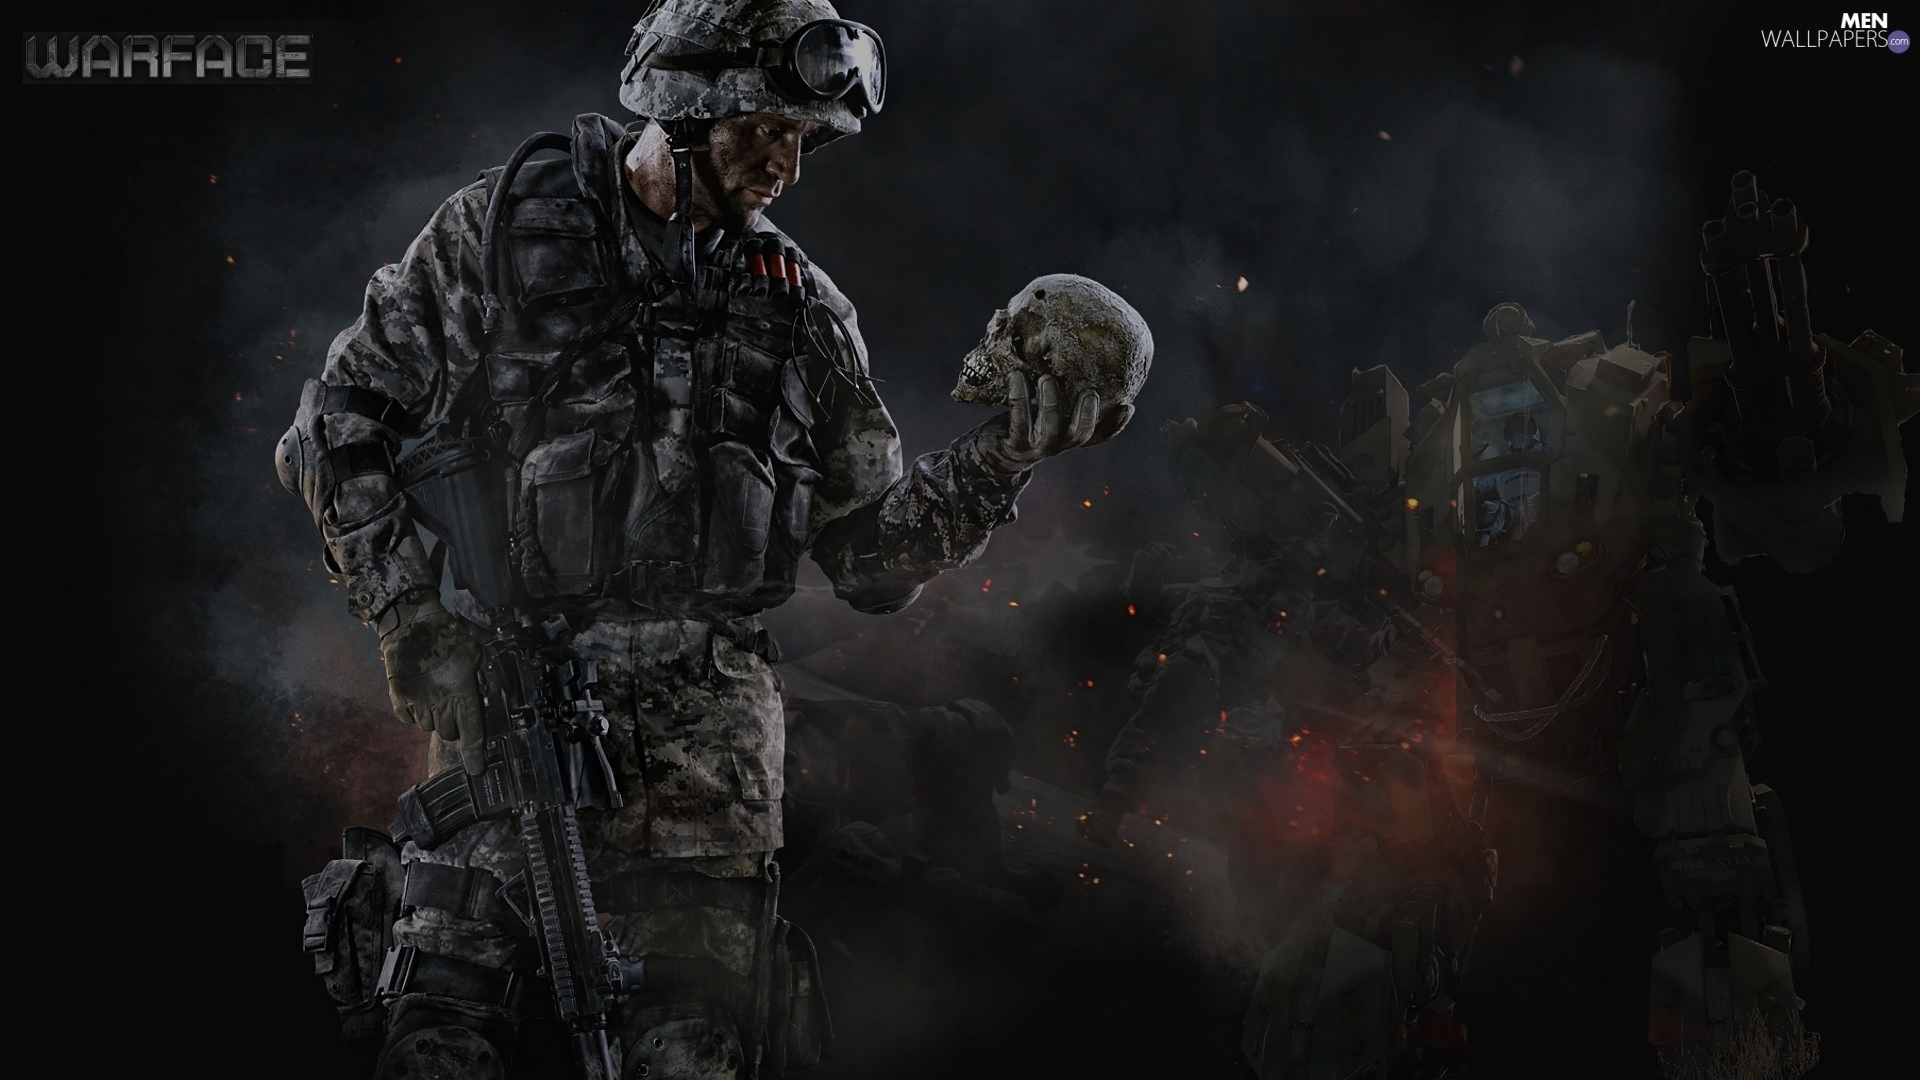 Game Soldier Skull Warface Men Wallpapers 1920x1080